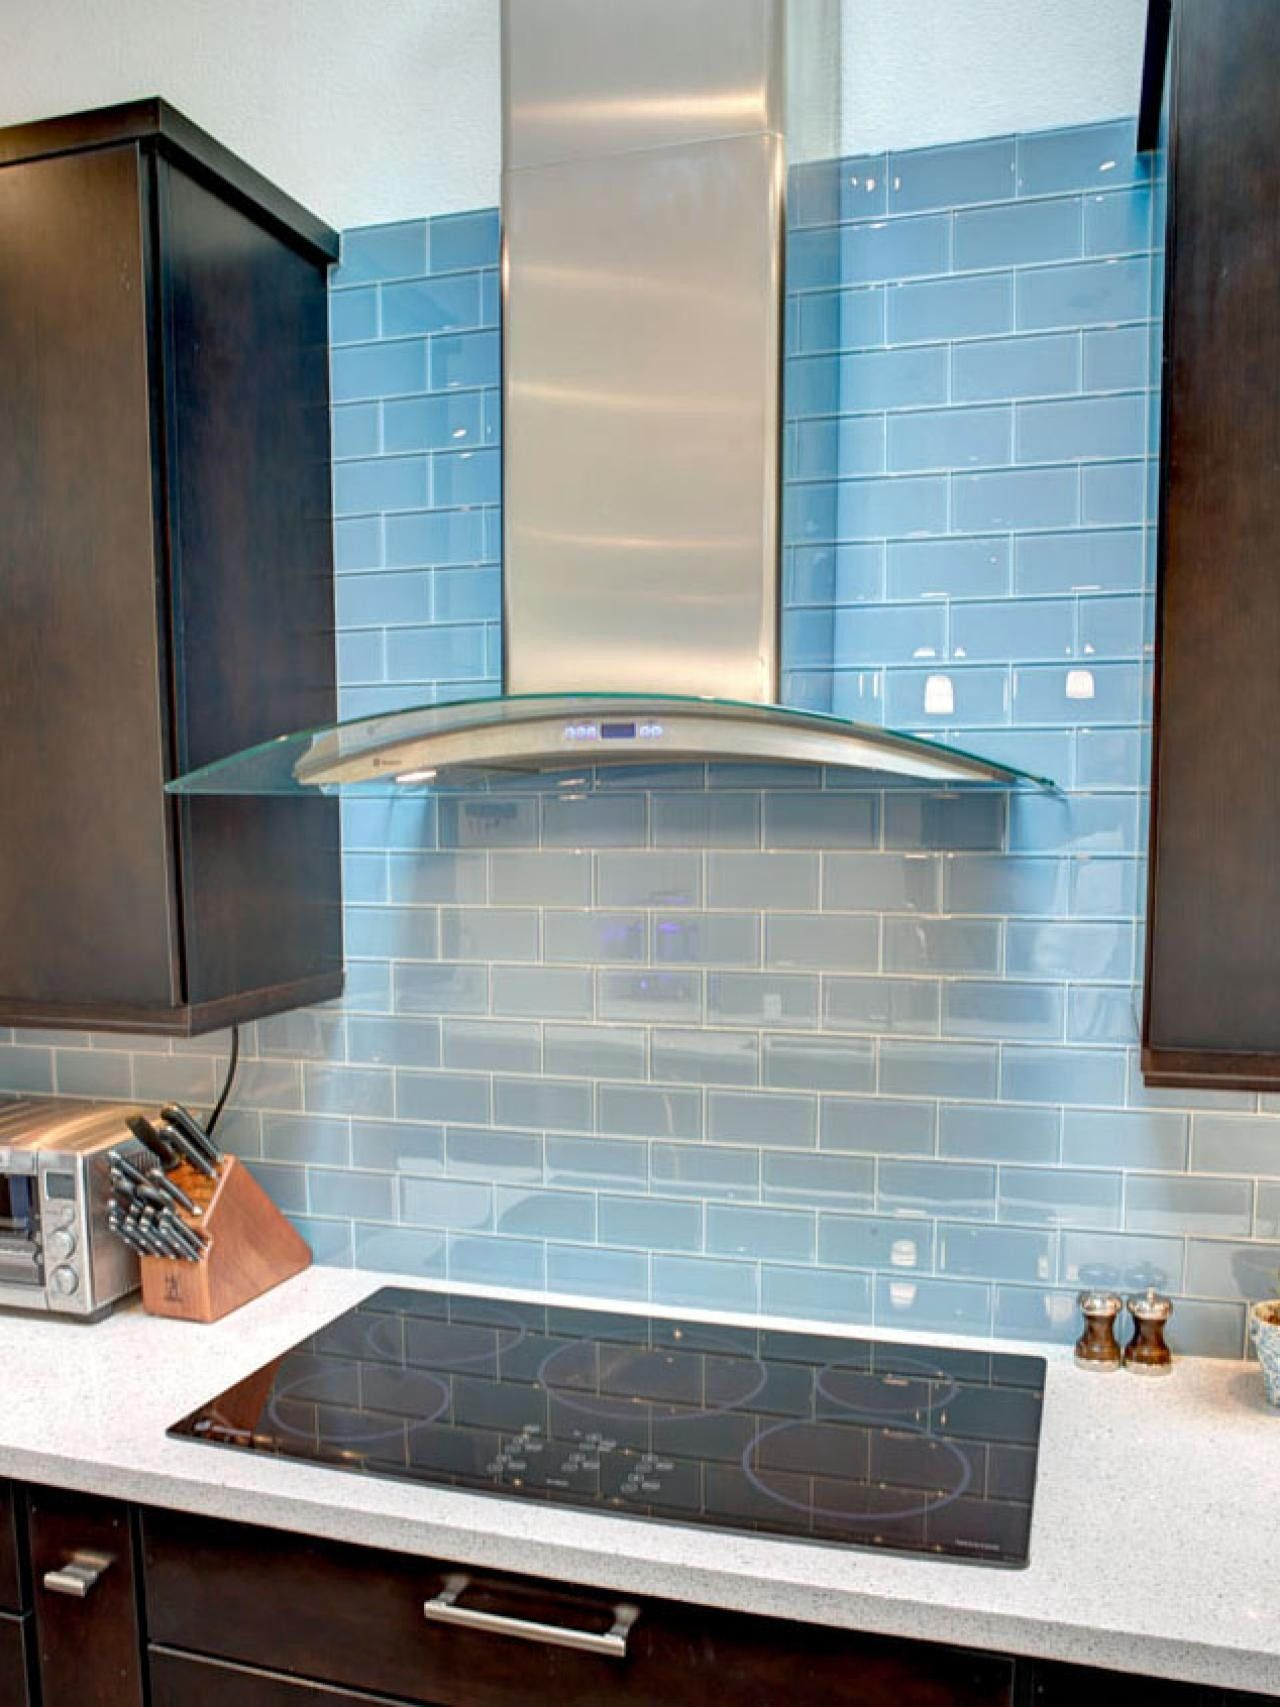 Tile Backsplash Behind Range Hood Kitchen Idea Kitchen